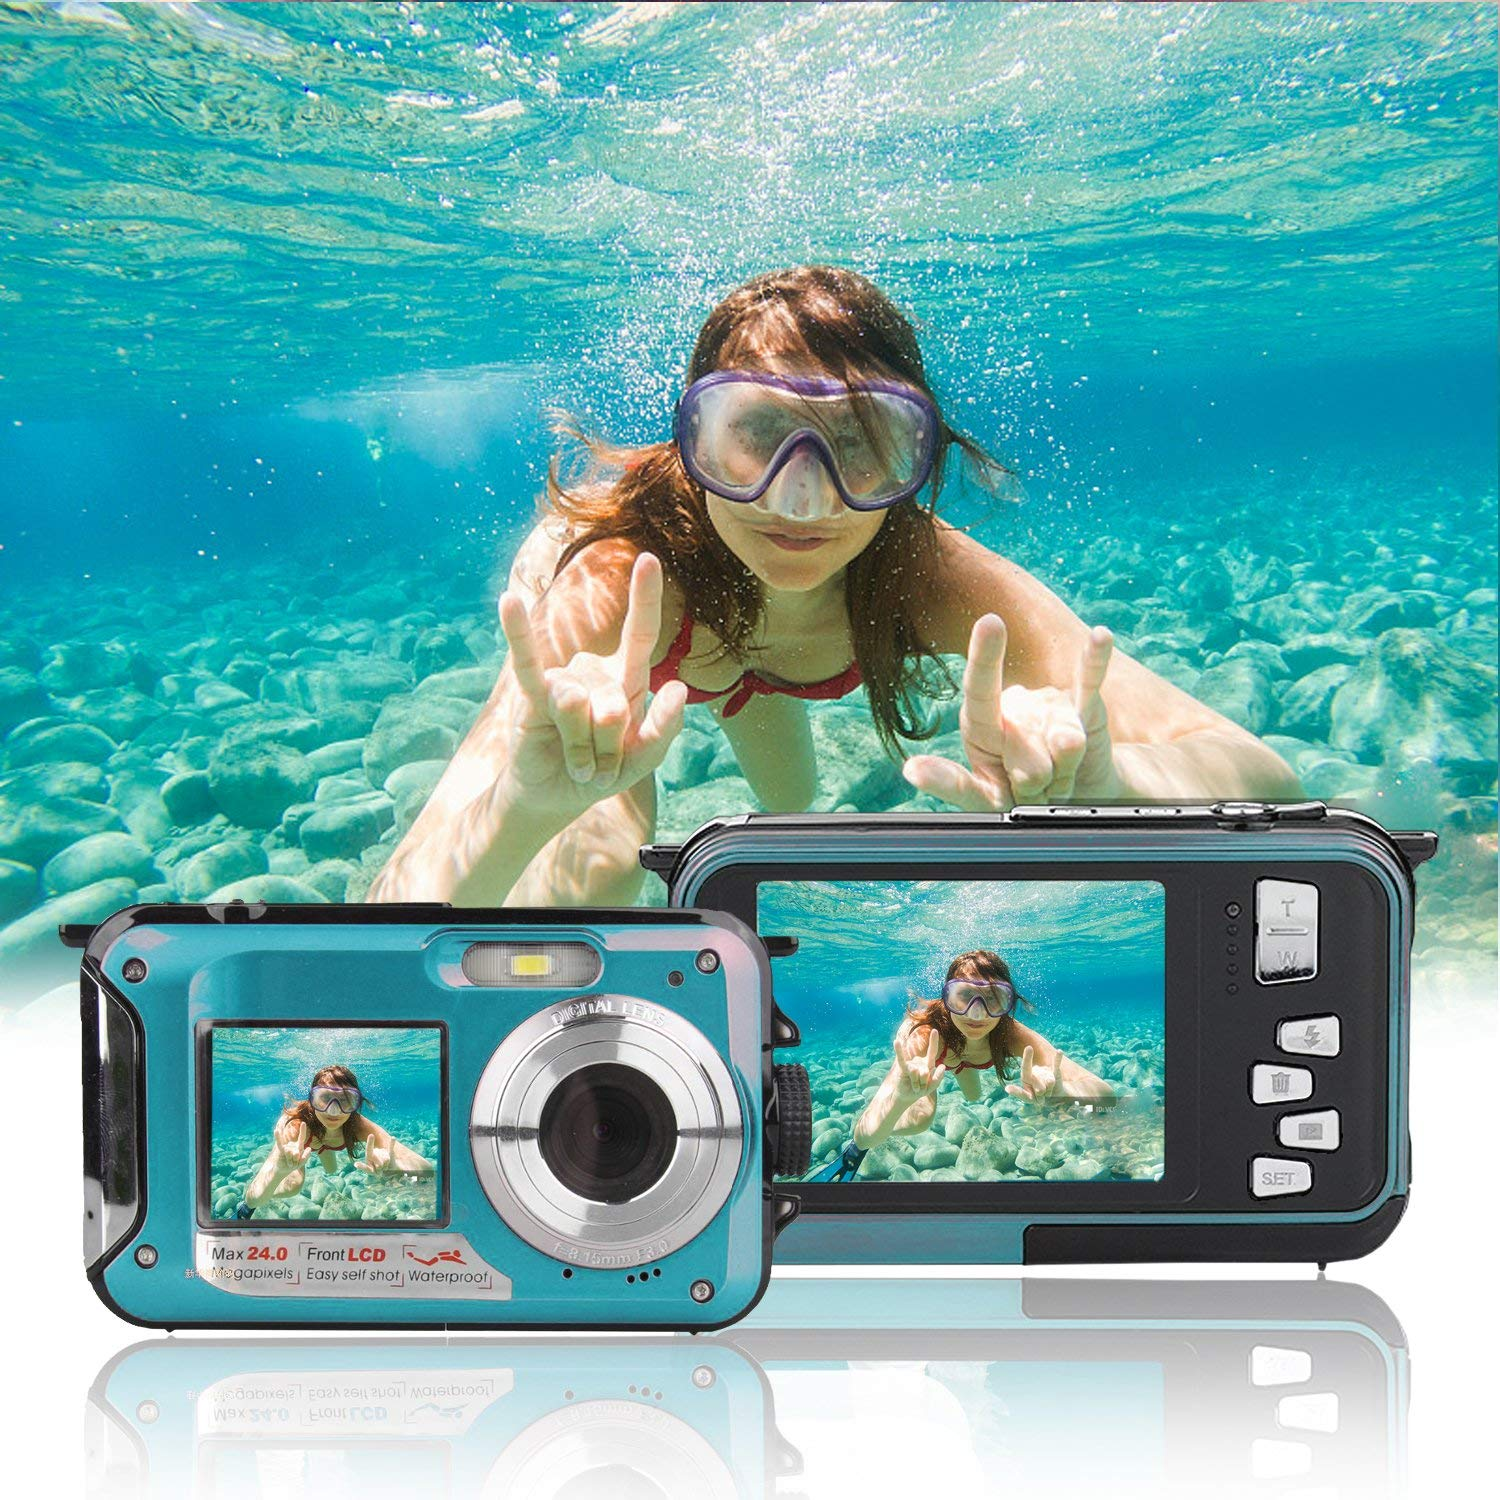 Waterproof Underwater Digital Camera for Snorkeling,Selfie Dual Screen Digital Cameras Waterproof Underwater Video Camera-Holiday,Trip